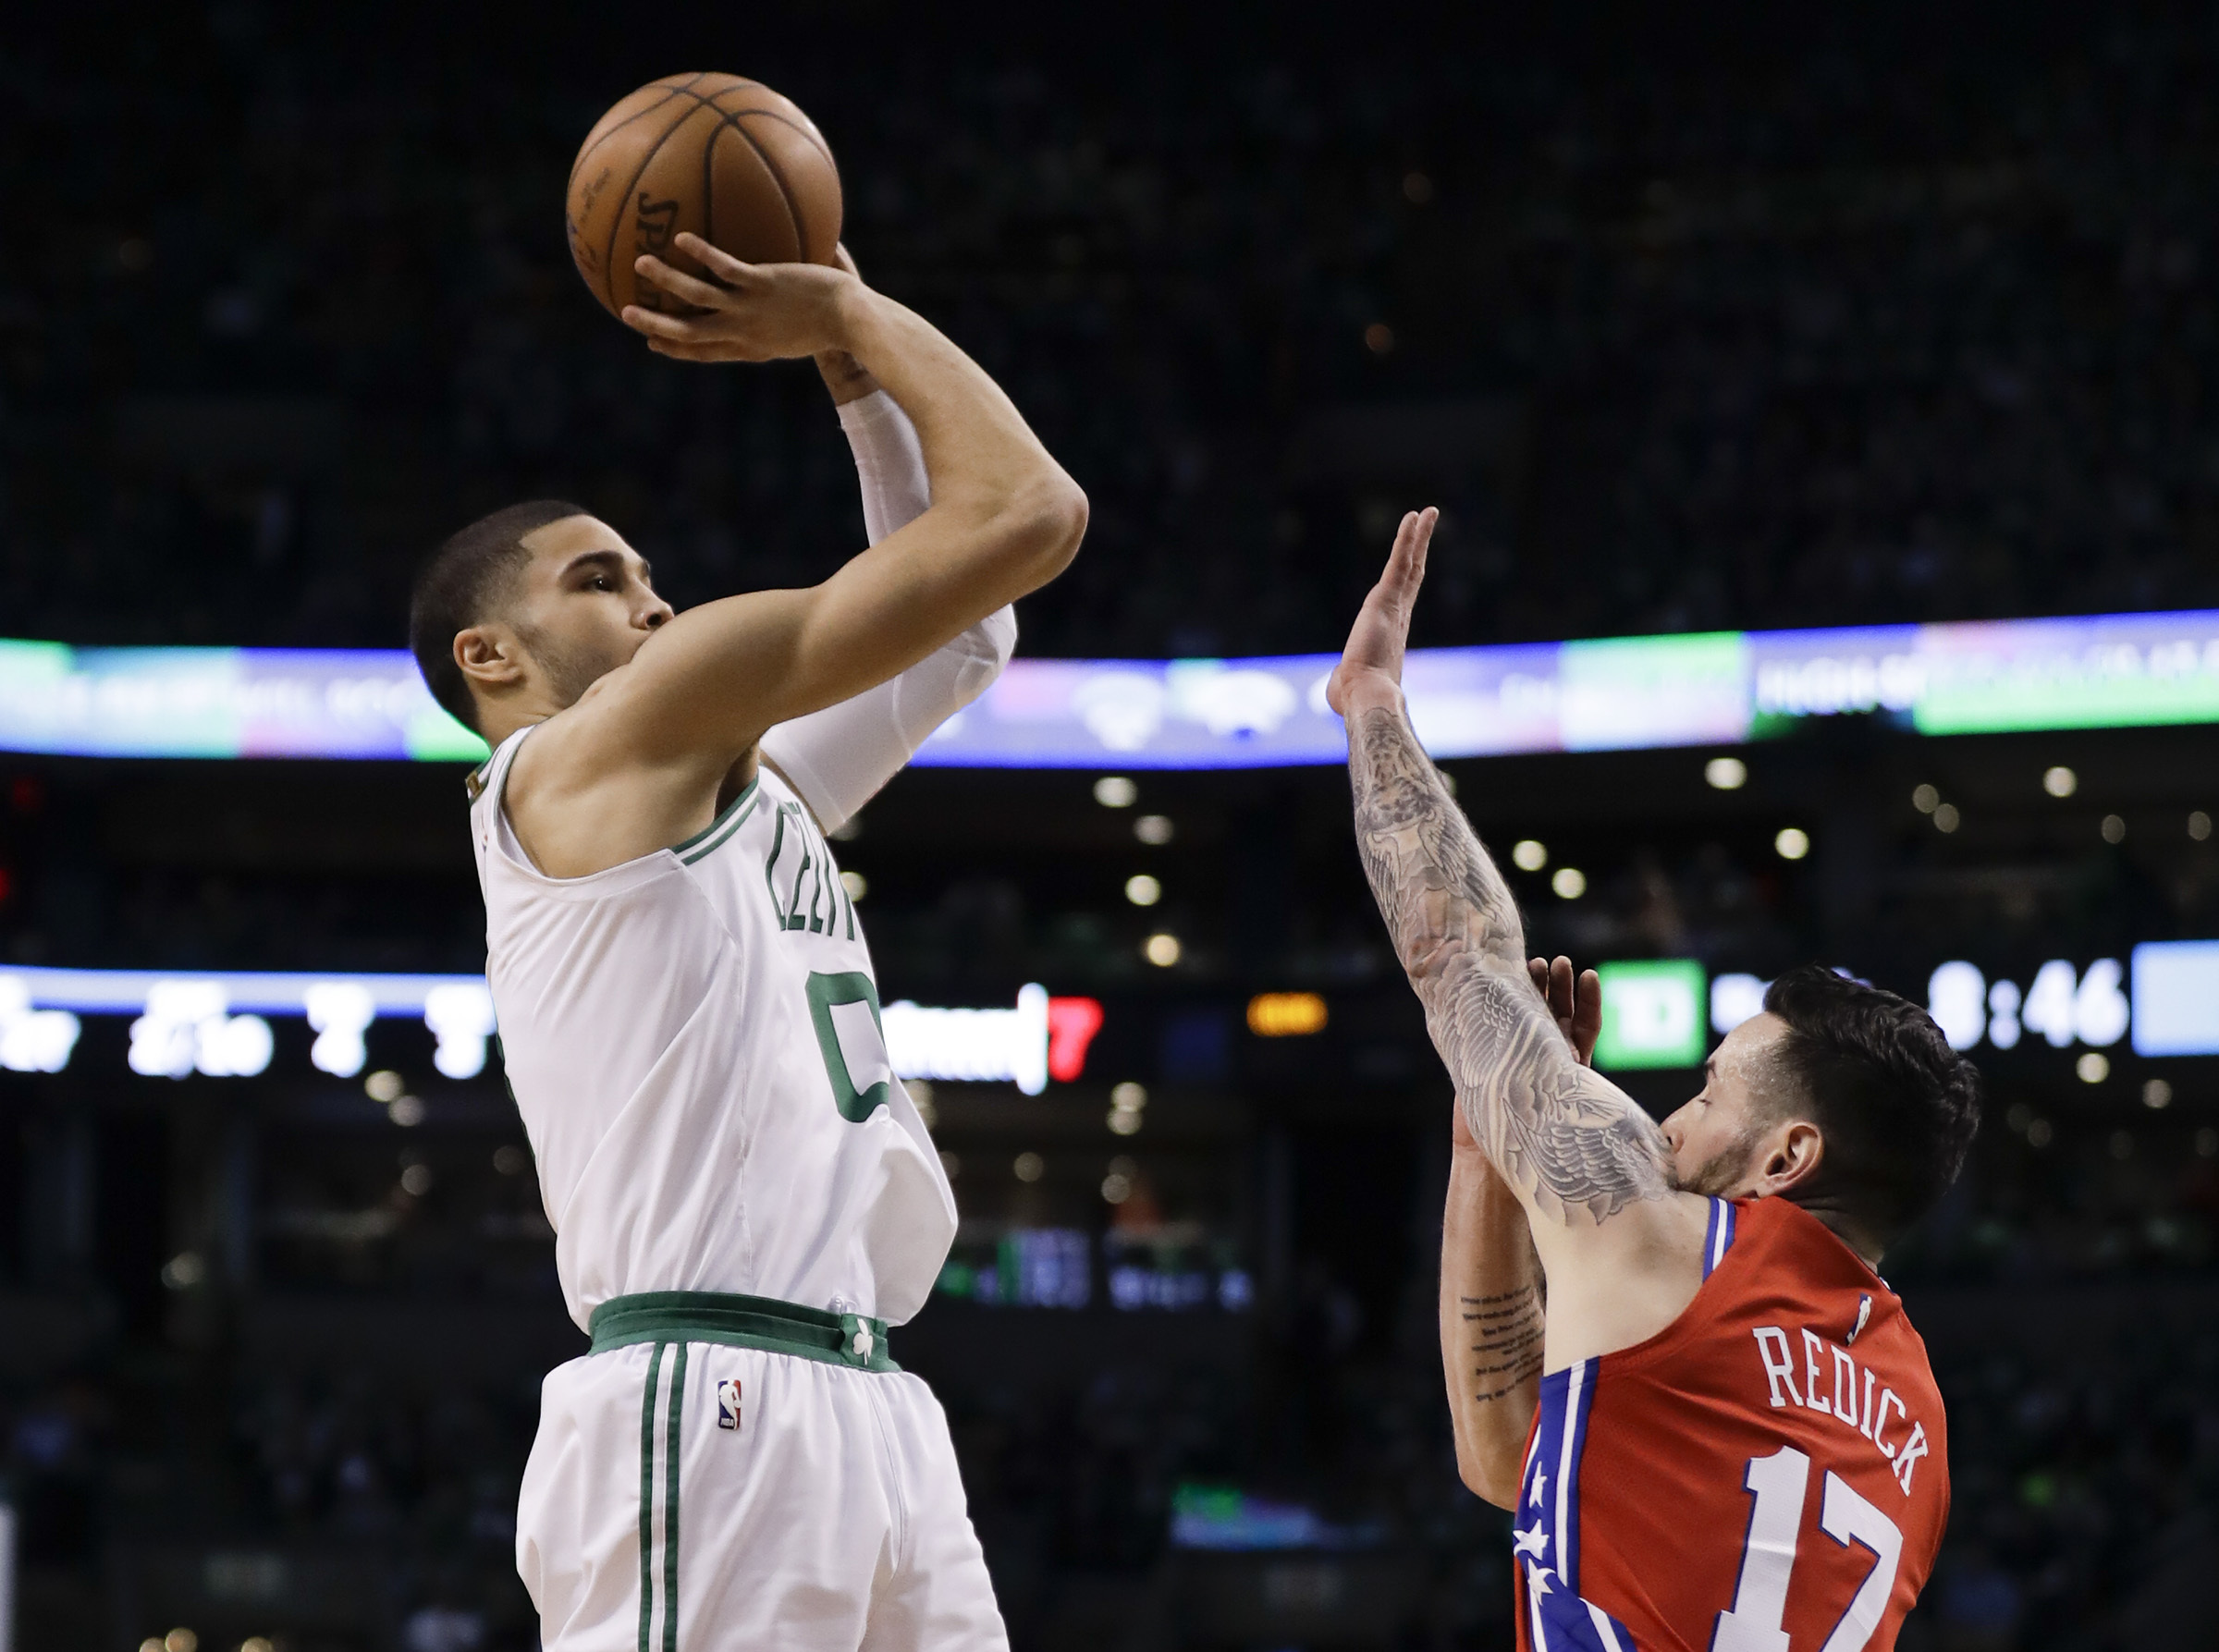 Jayson Tatum´s shooting percentage as a rookie is the outlier, not the mean.